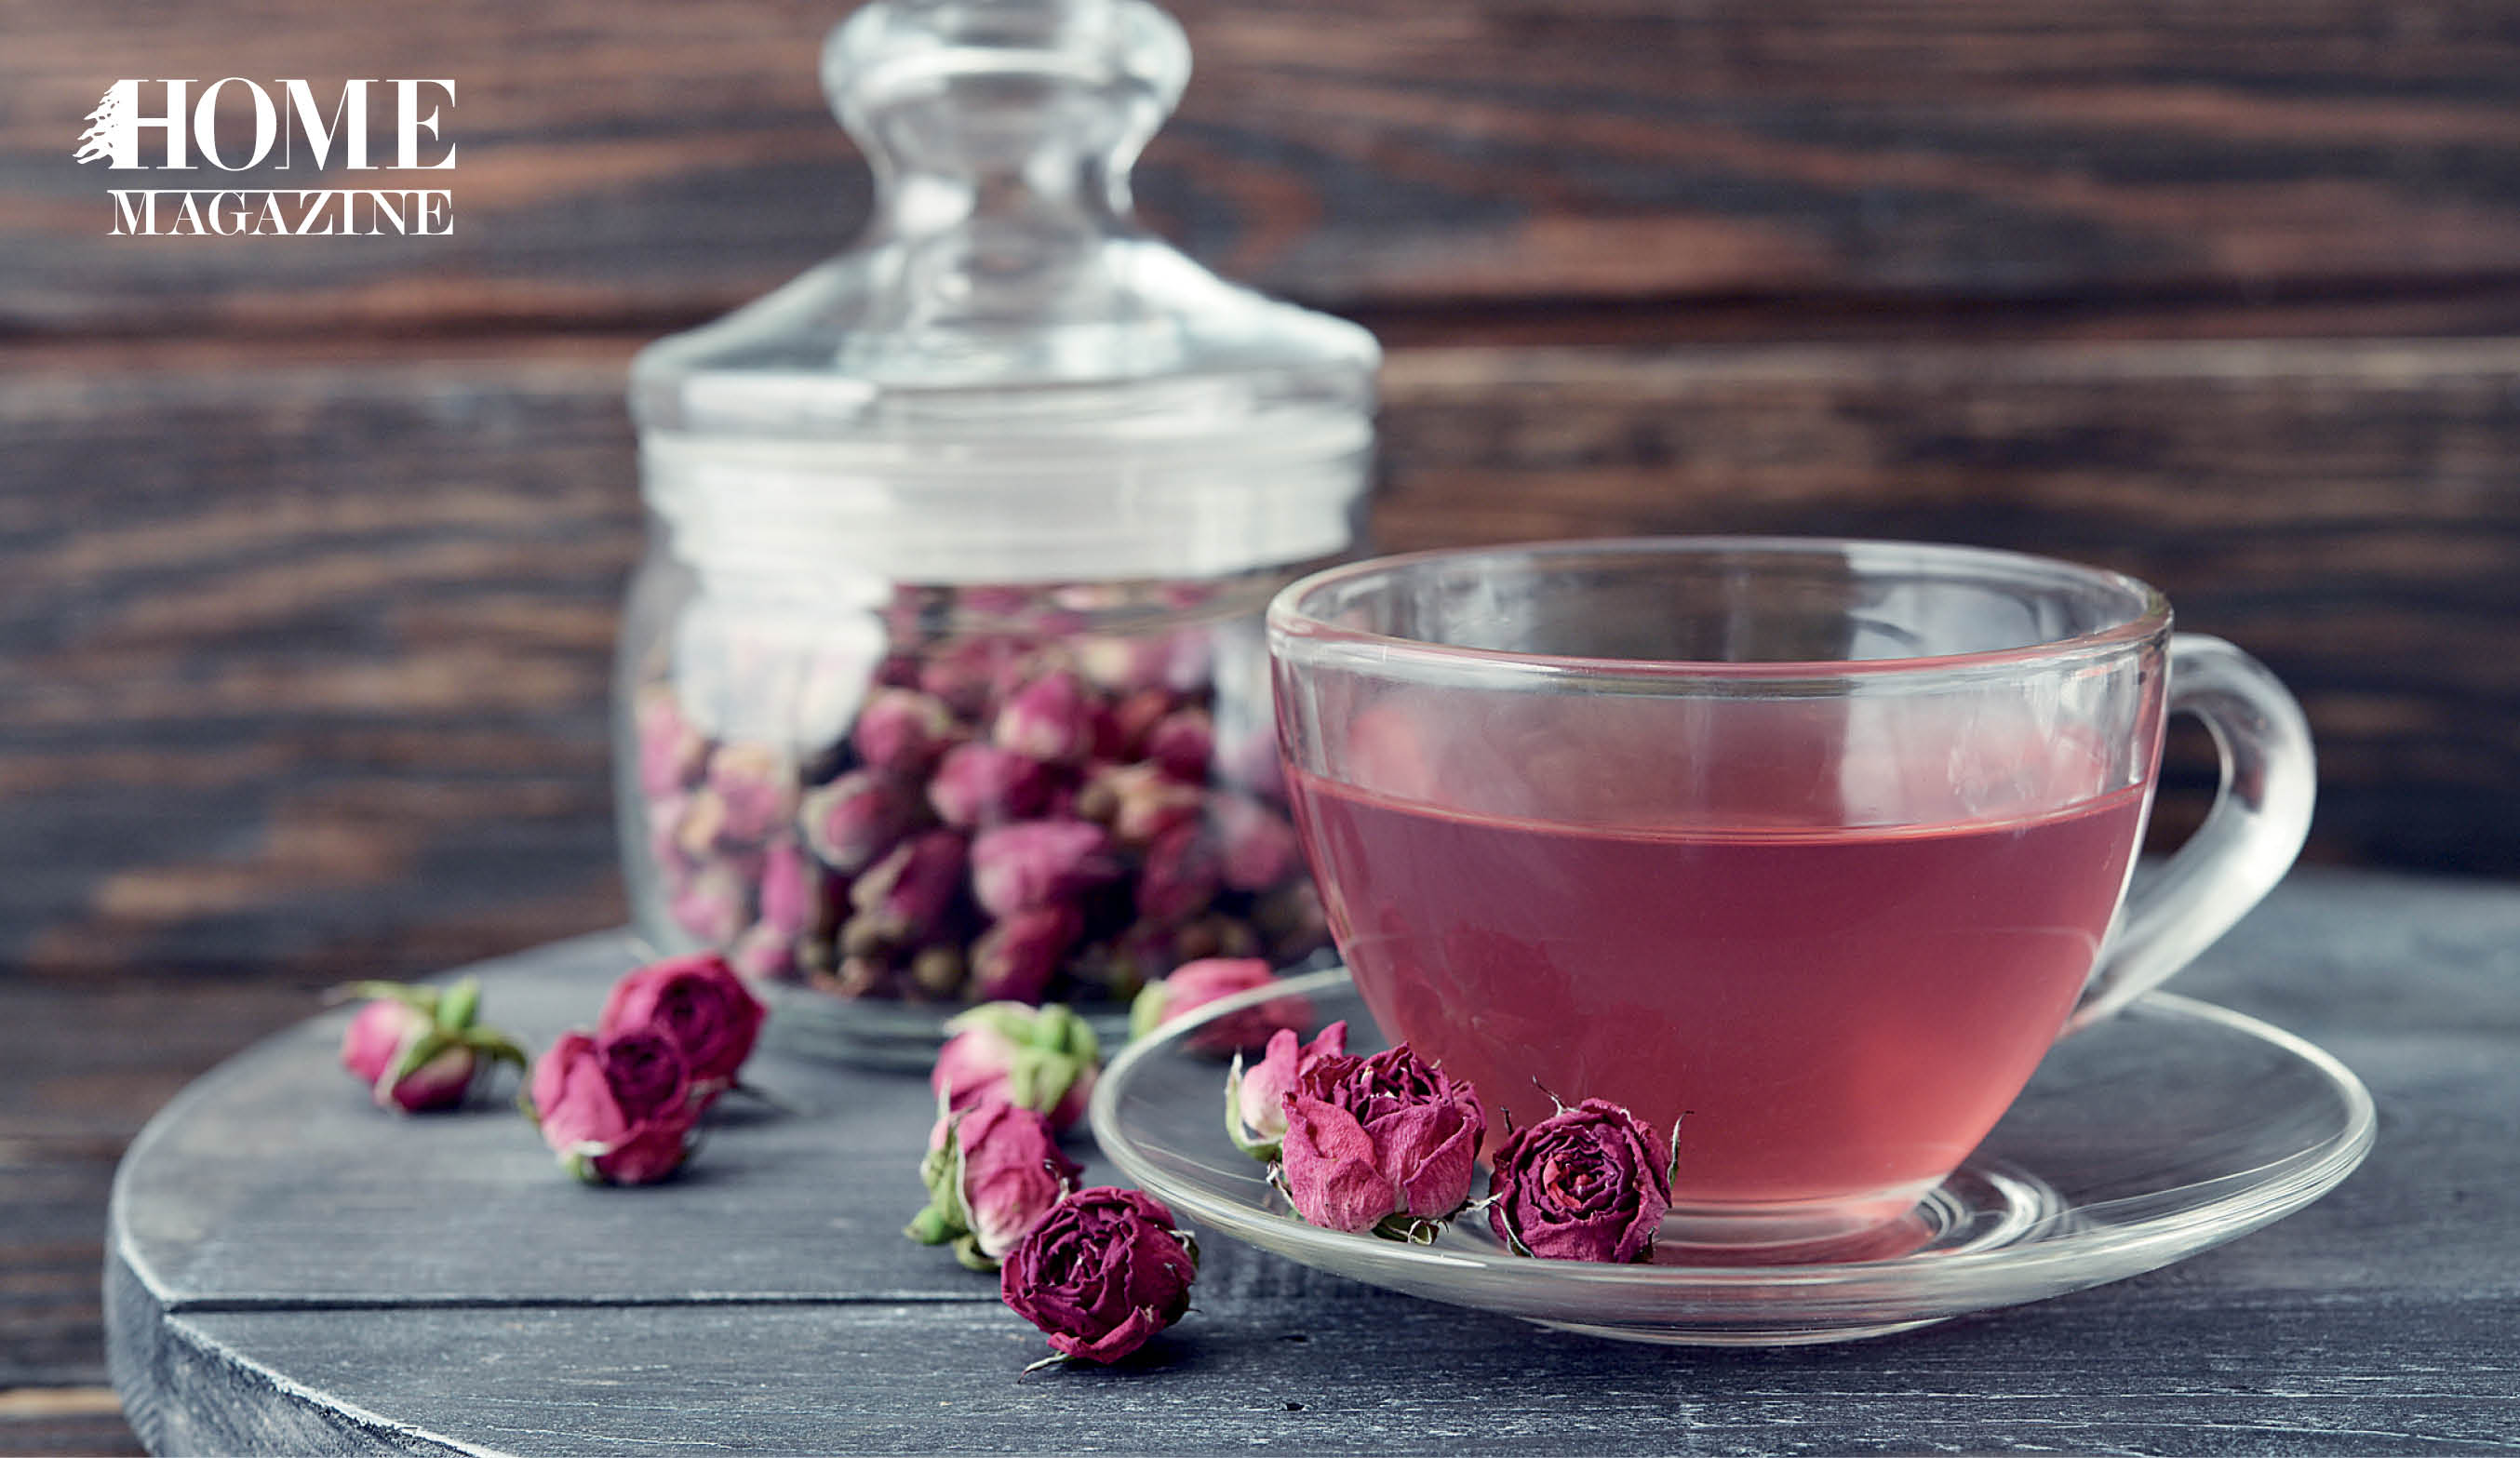 Pink roses with pink fluid in a cup